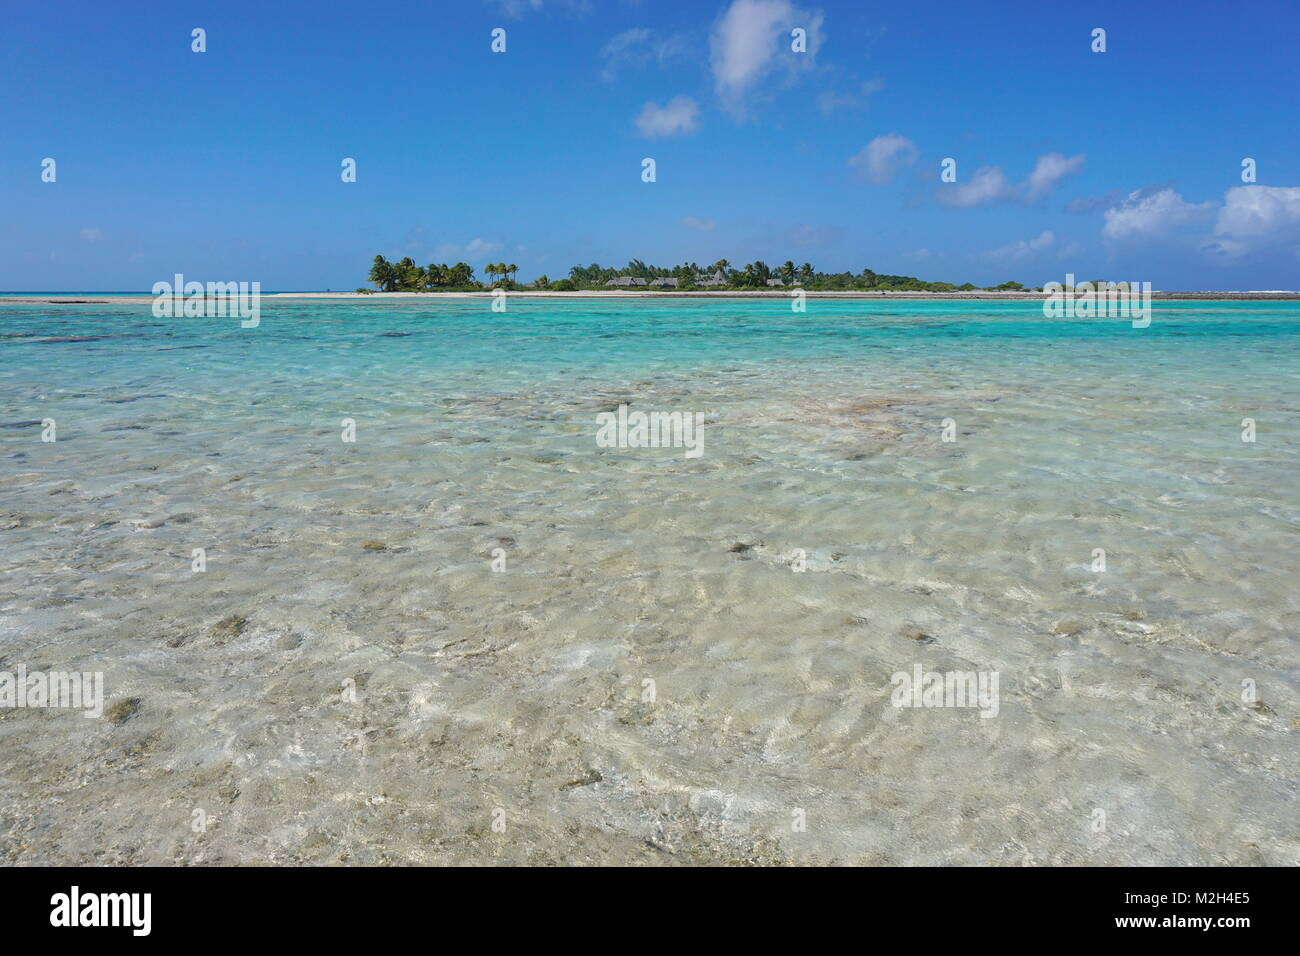 Shallow water of a lagoon and a tropical island in background, Tikehau atoll, Tuamotus, French Polynesia, south - Stock Image